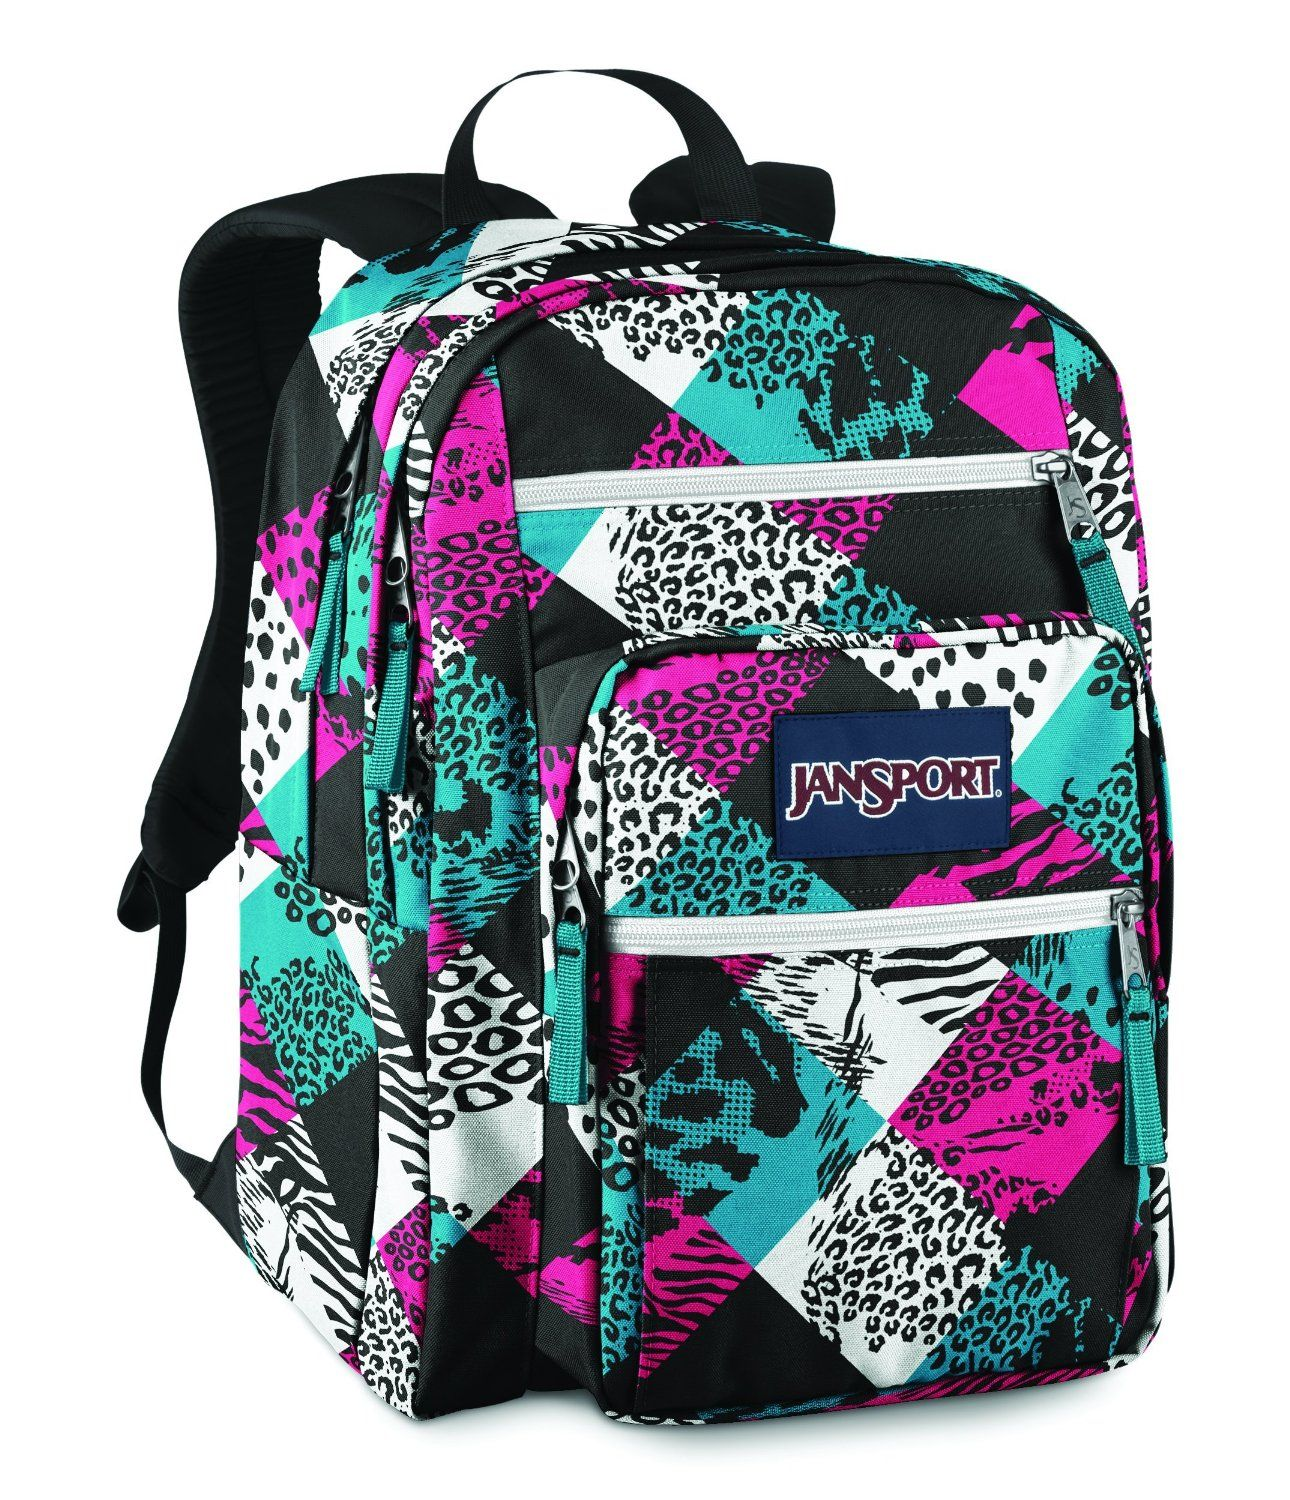 jansport big student backpack - Google Search Trans Jansport Backpack effae1fa46846